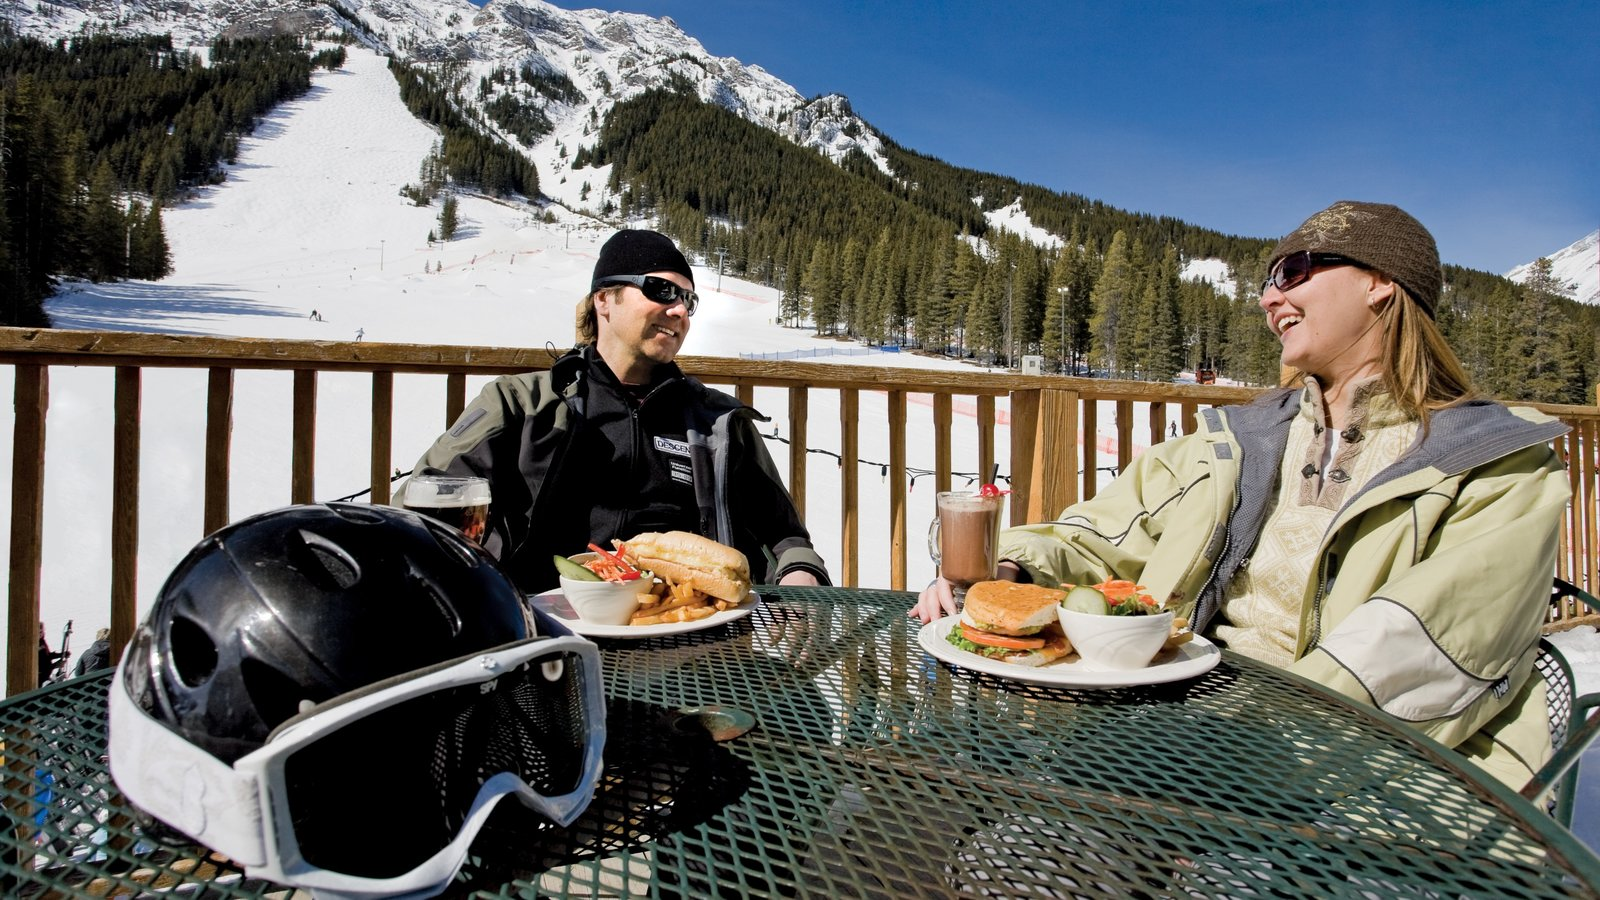 Mount Norquay Ski Resort featuring outdoor eating, snow and food